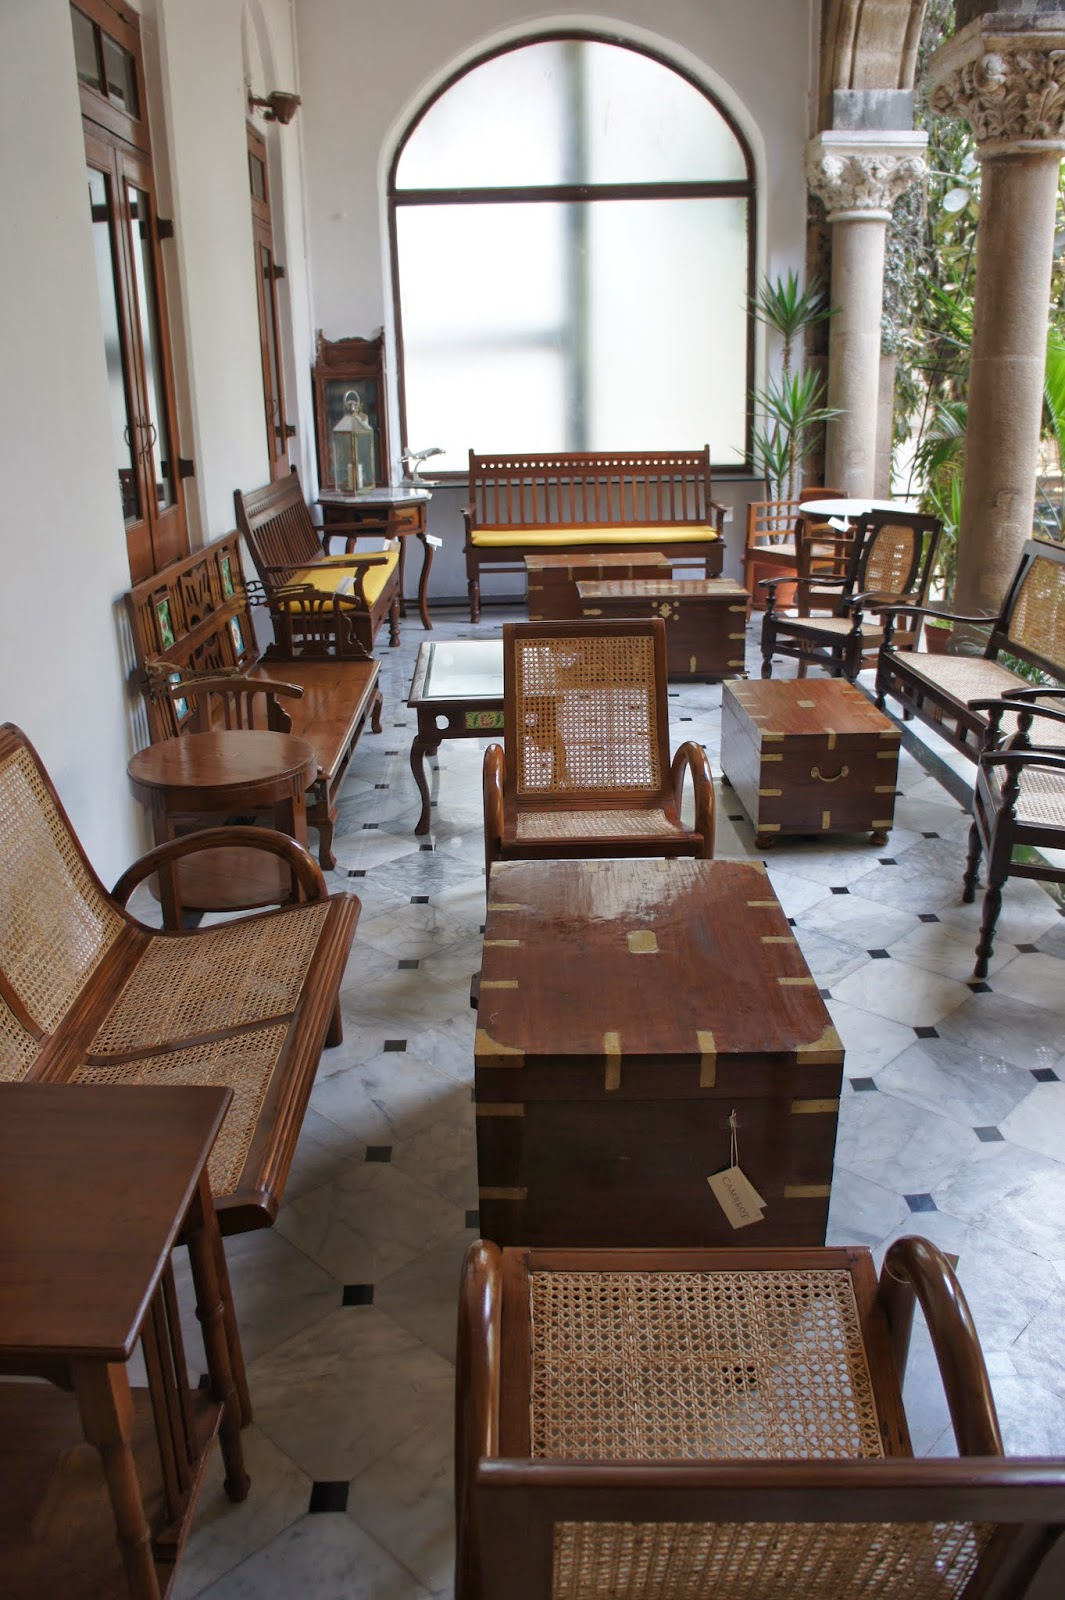 Revolving Chair Manufacturers In Mumbai Nail Salon Chairs Bombayjules Return To Camelot And A New Del Trotter Bar